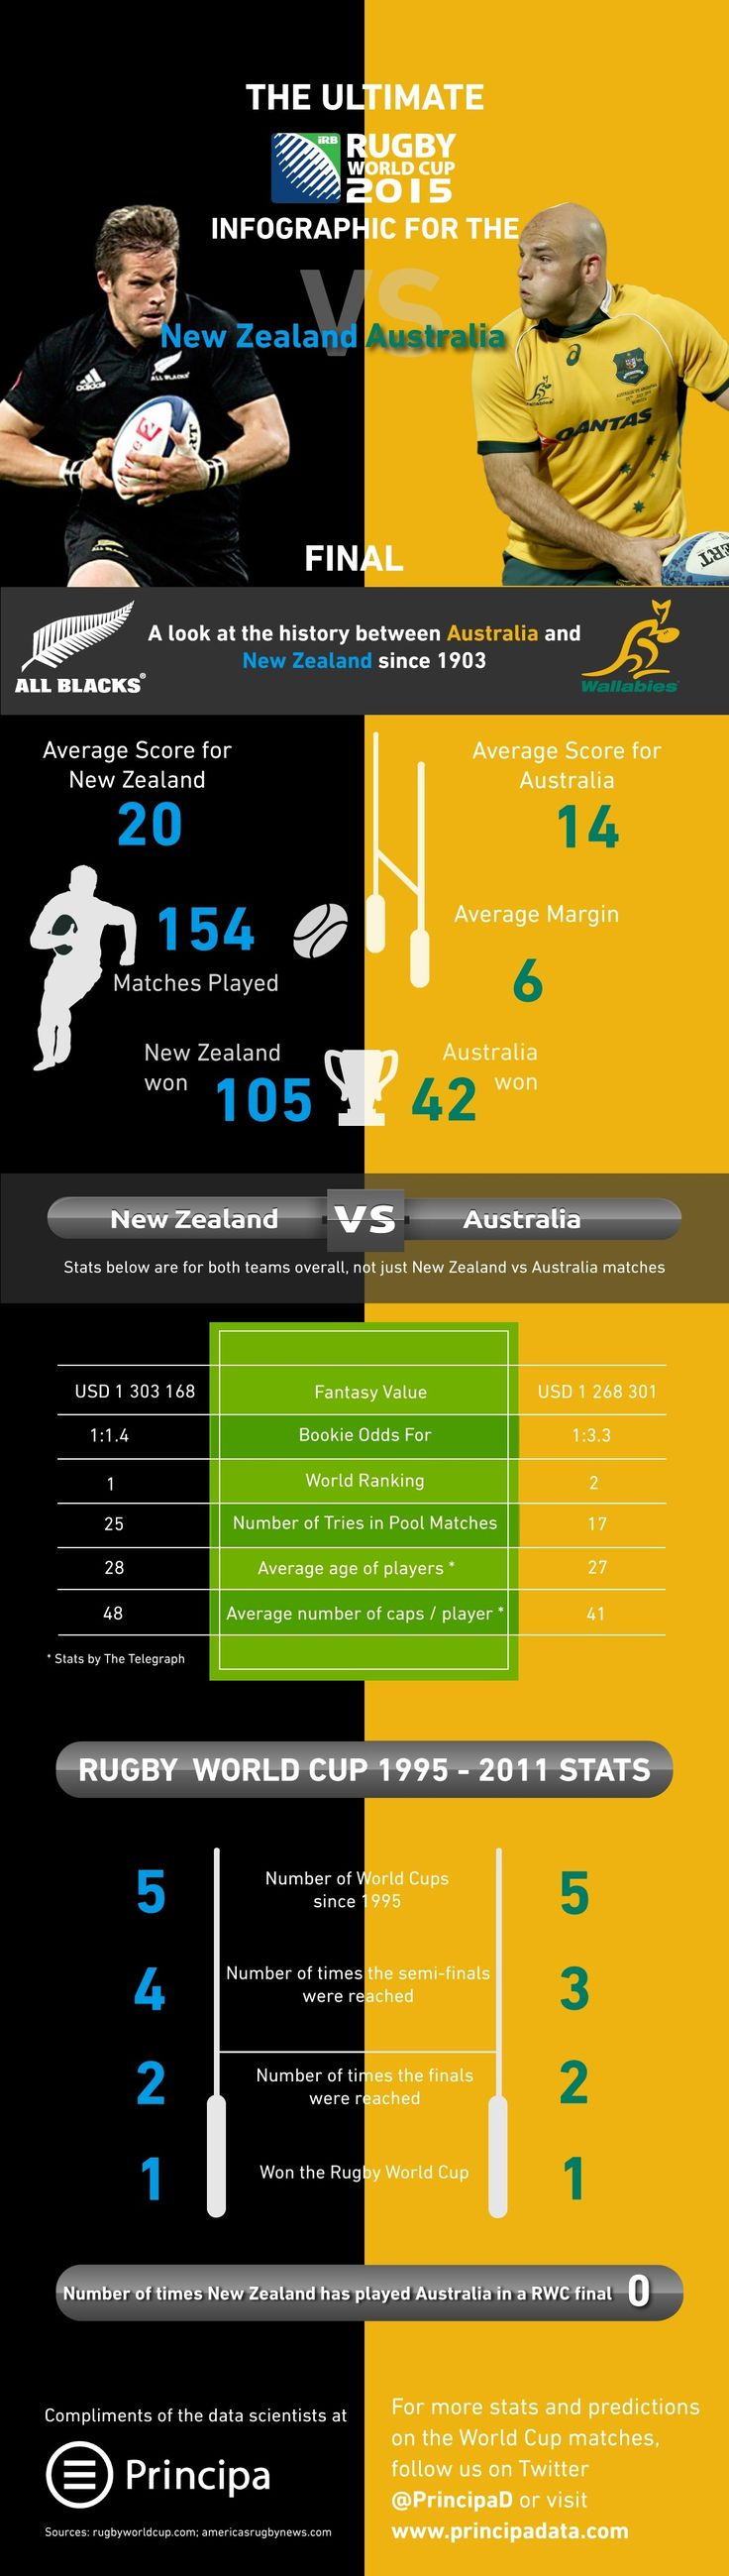 Rugby World Cup Final - Infographic between New Zealand and Australia